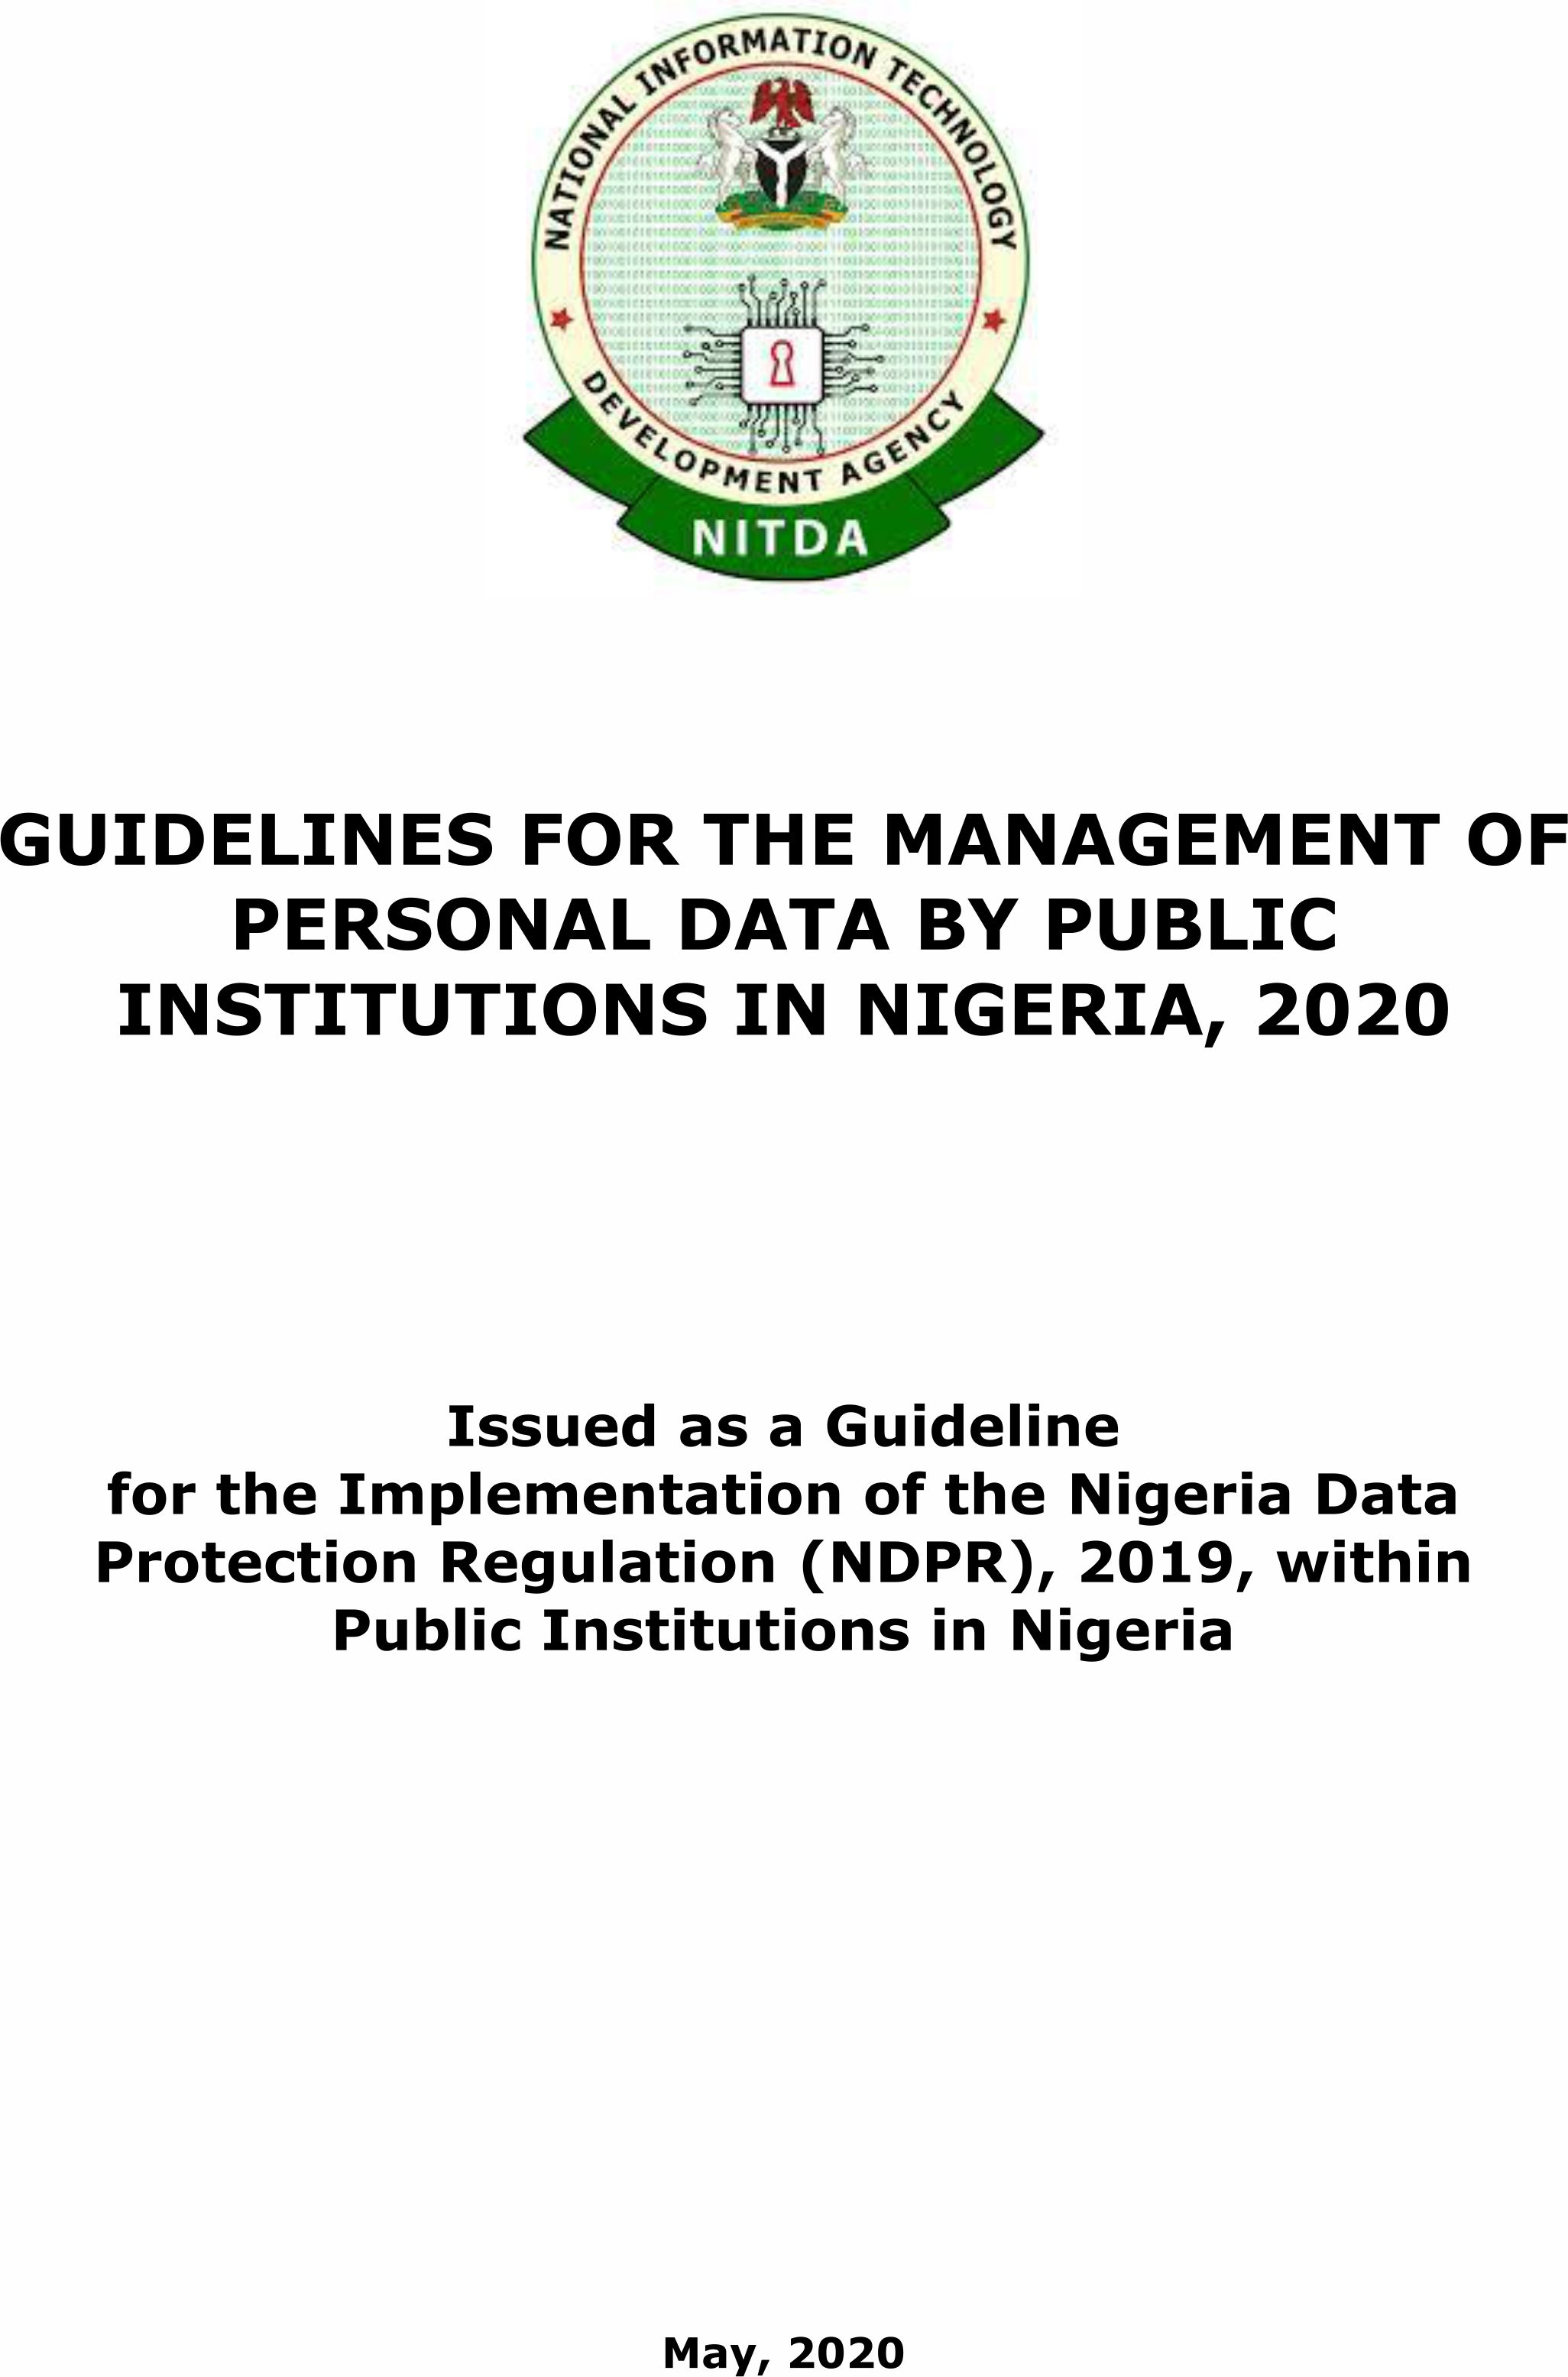 Guidelines for the Management of Personal Data by Public Institutions in Nigeria, 2020